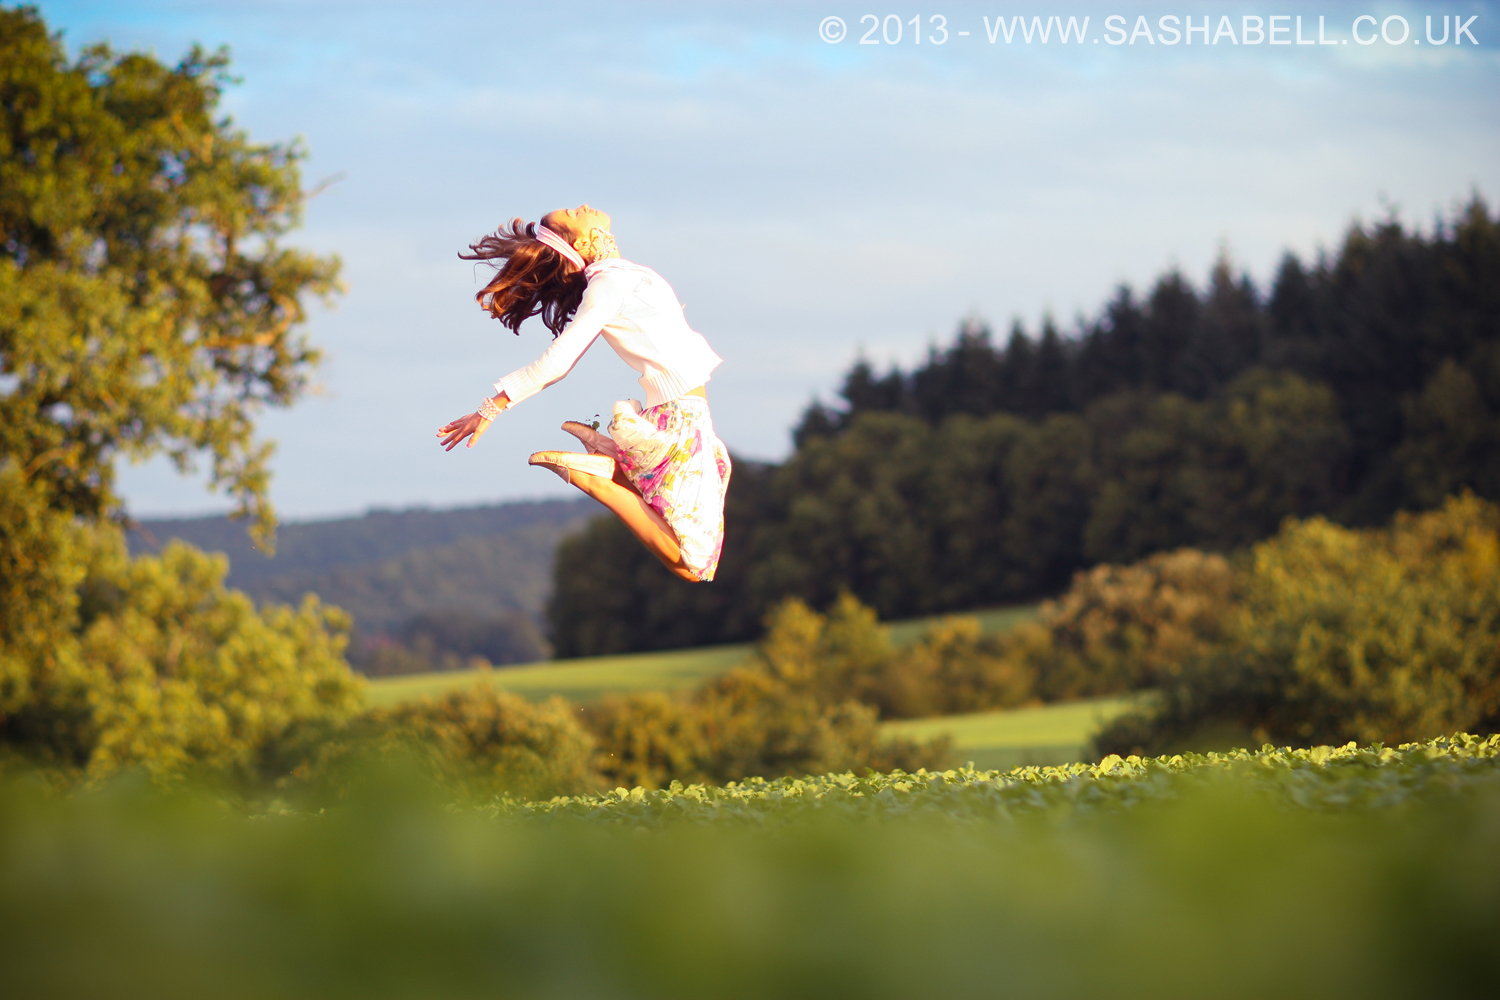 Jumping Girls – Day 335/365